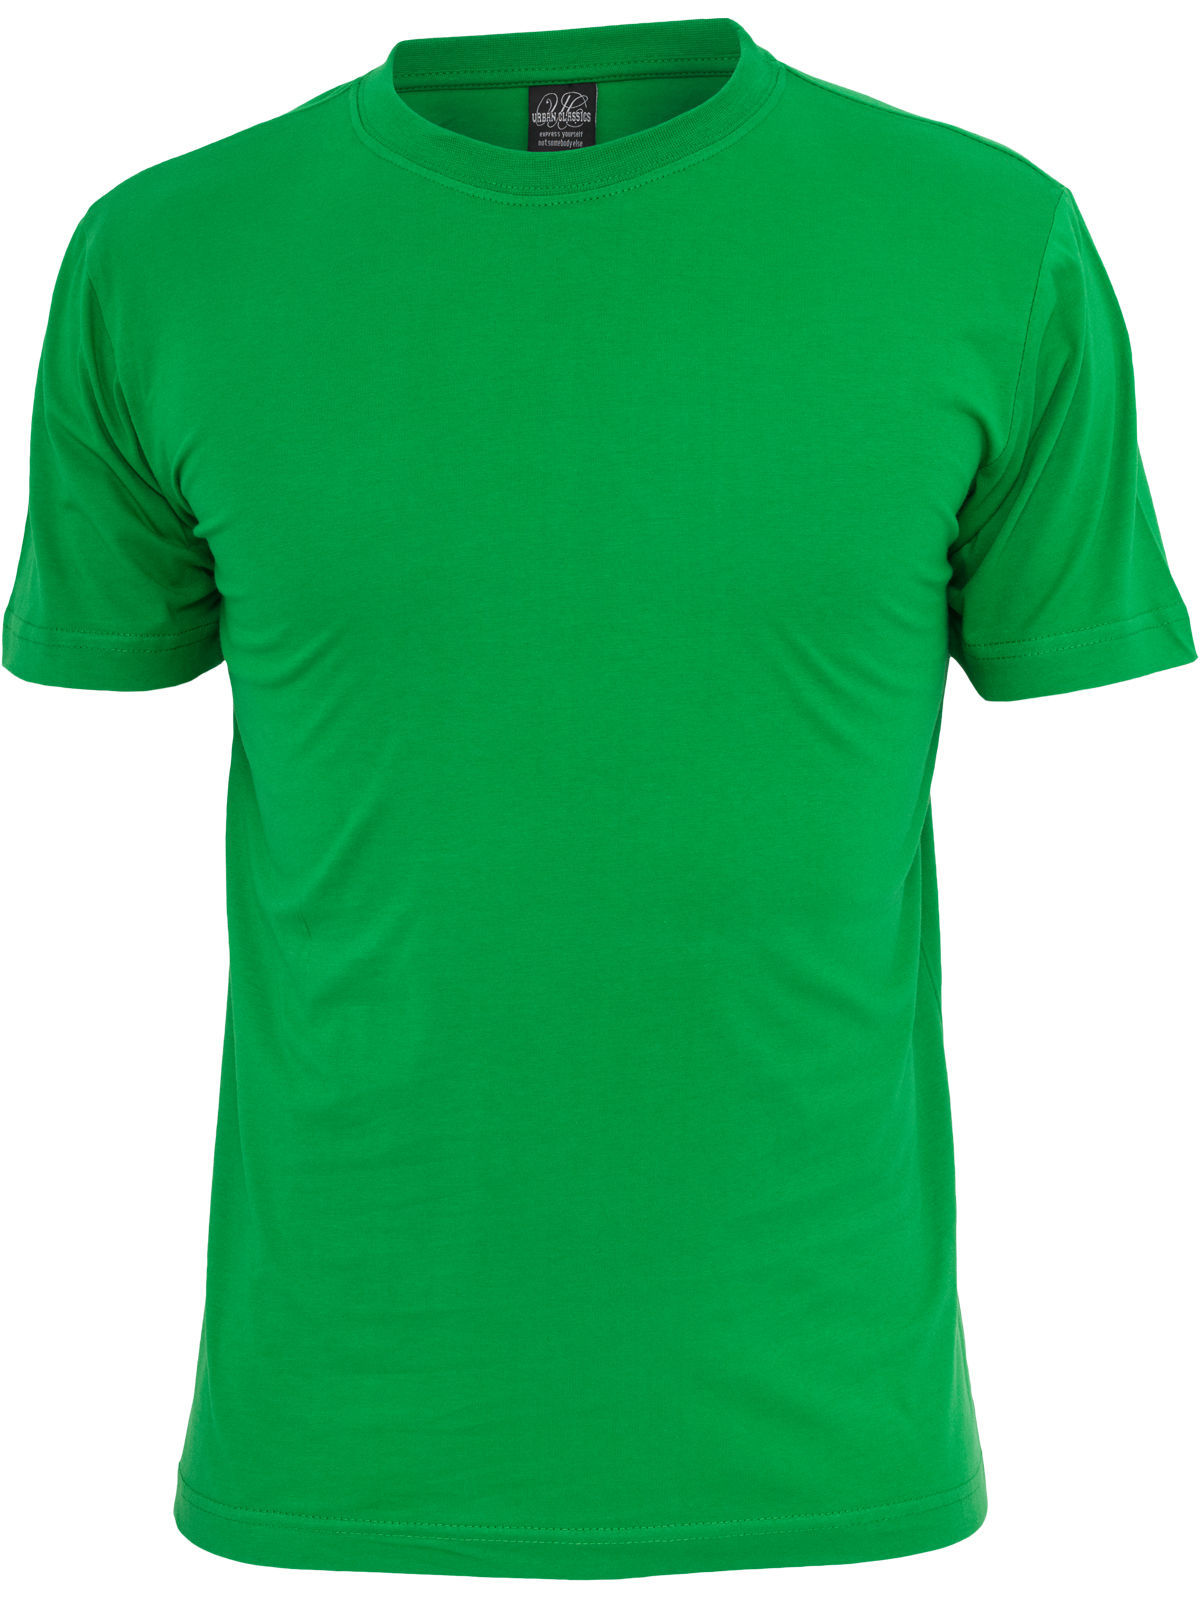 T Short Green T Shirt Artee Shirt